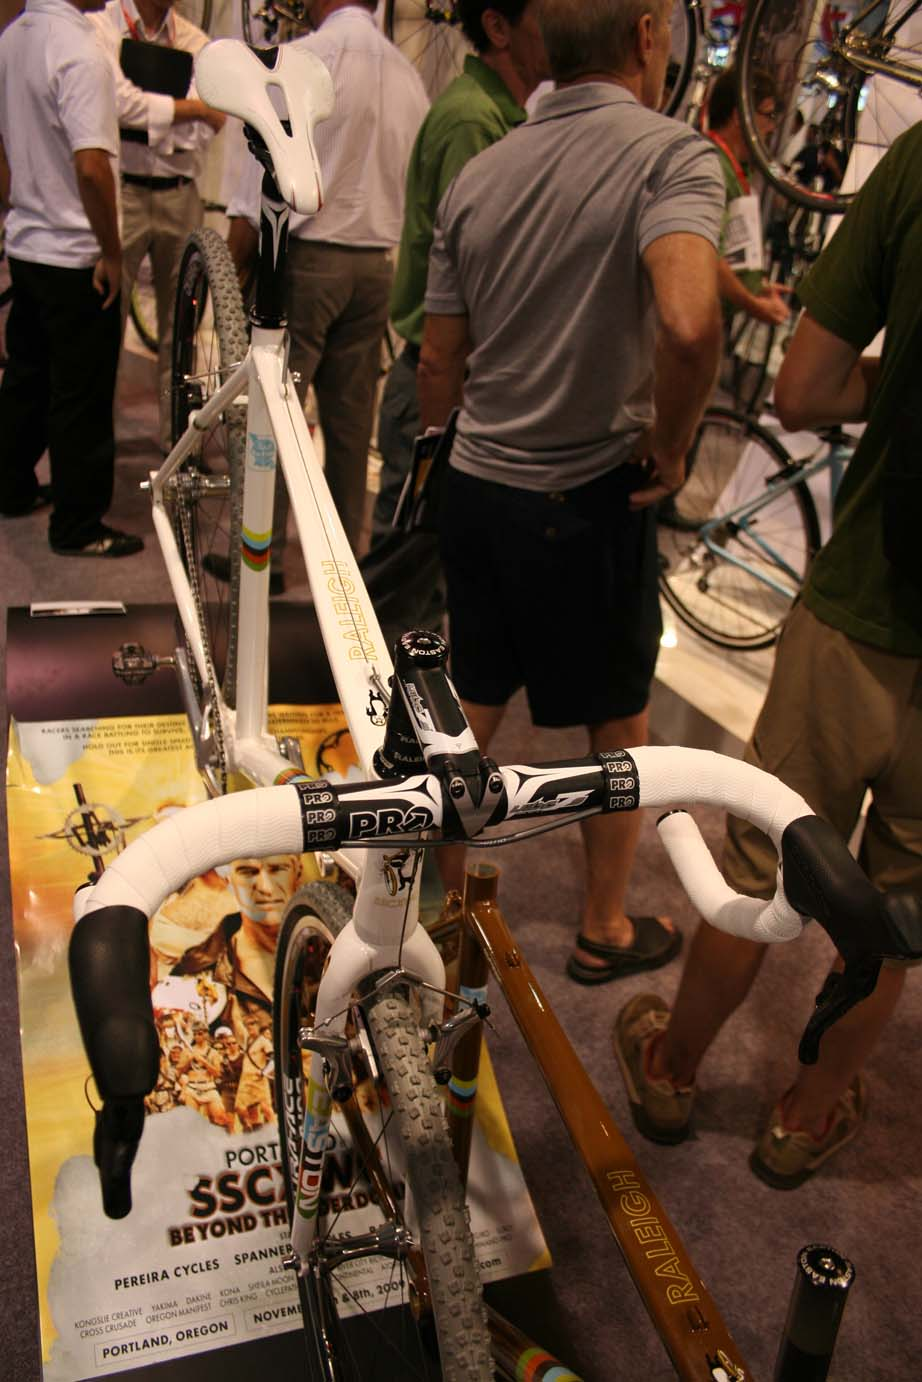 Continuing with the Shimano theme, Pro supplies the bar and stem. by Andrew Yee